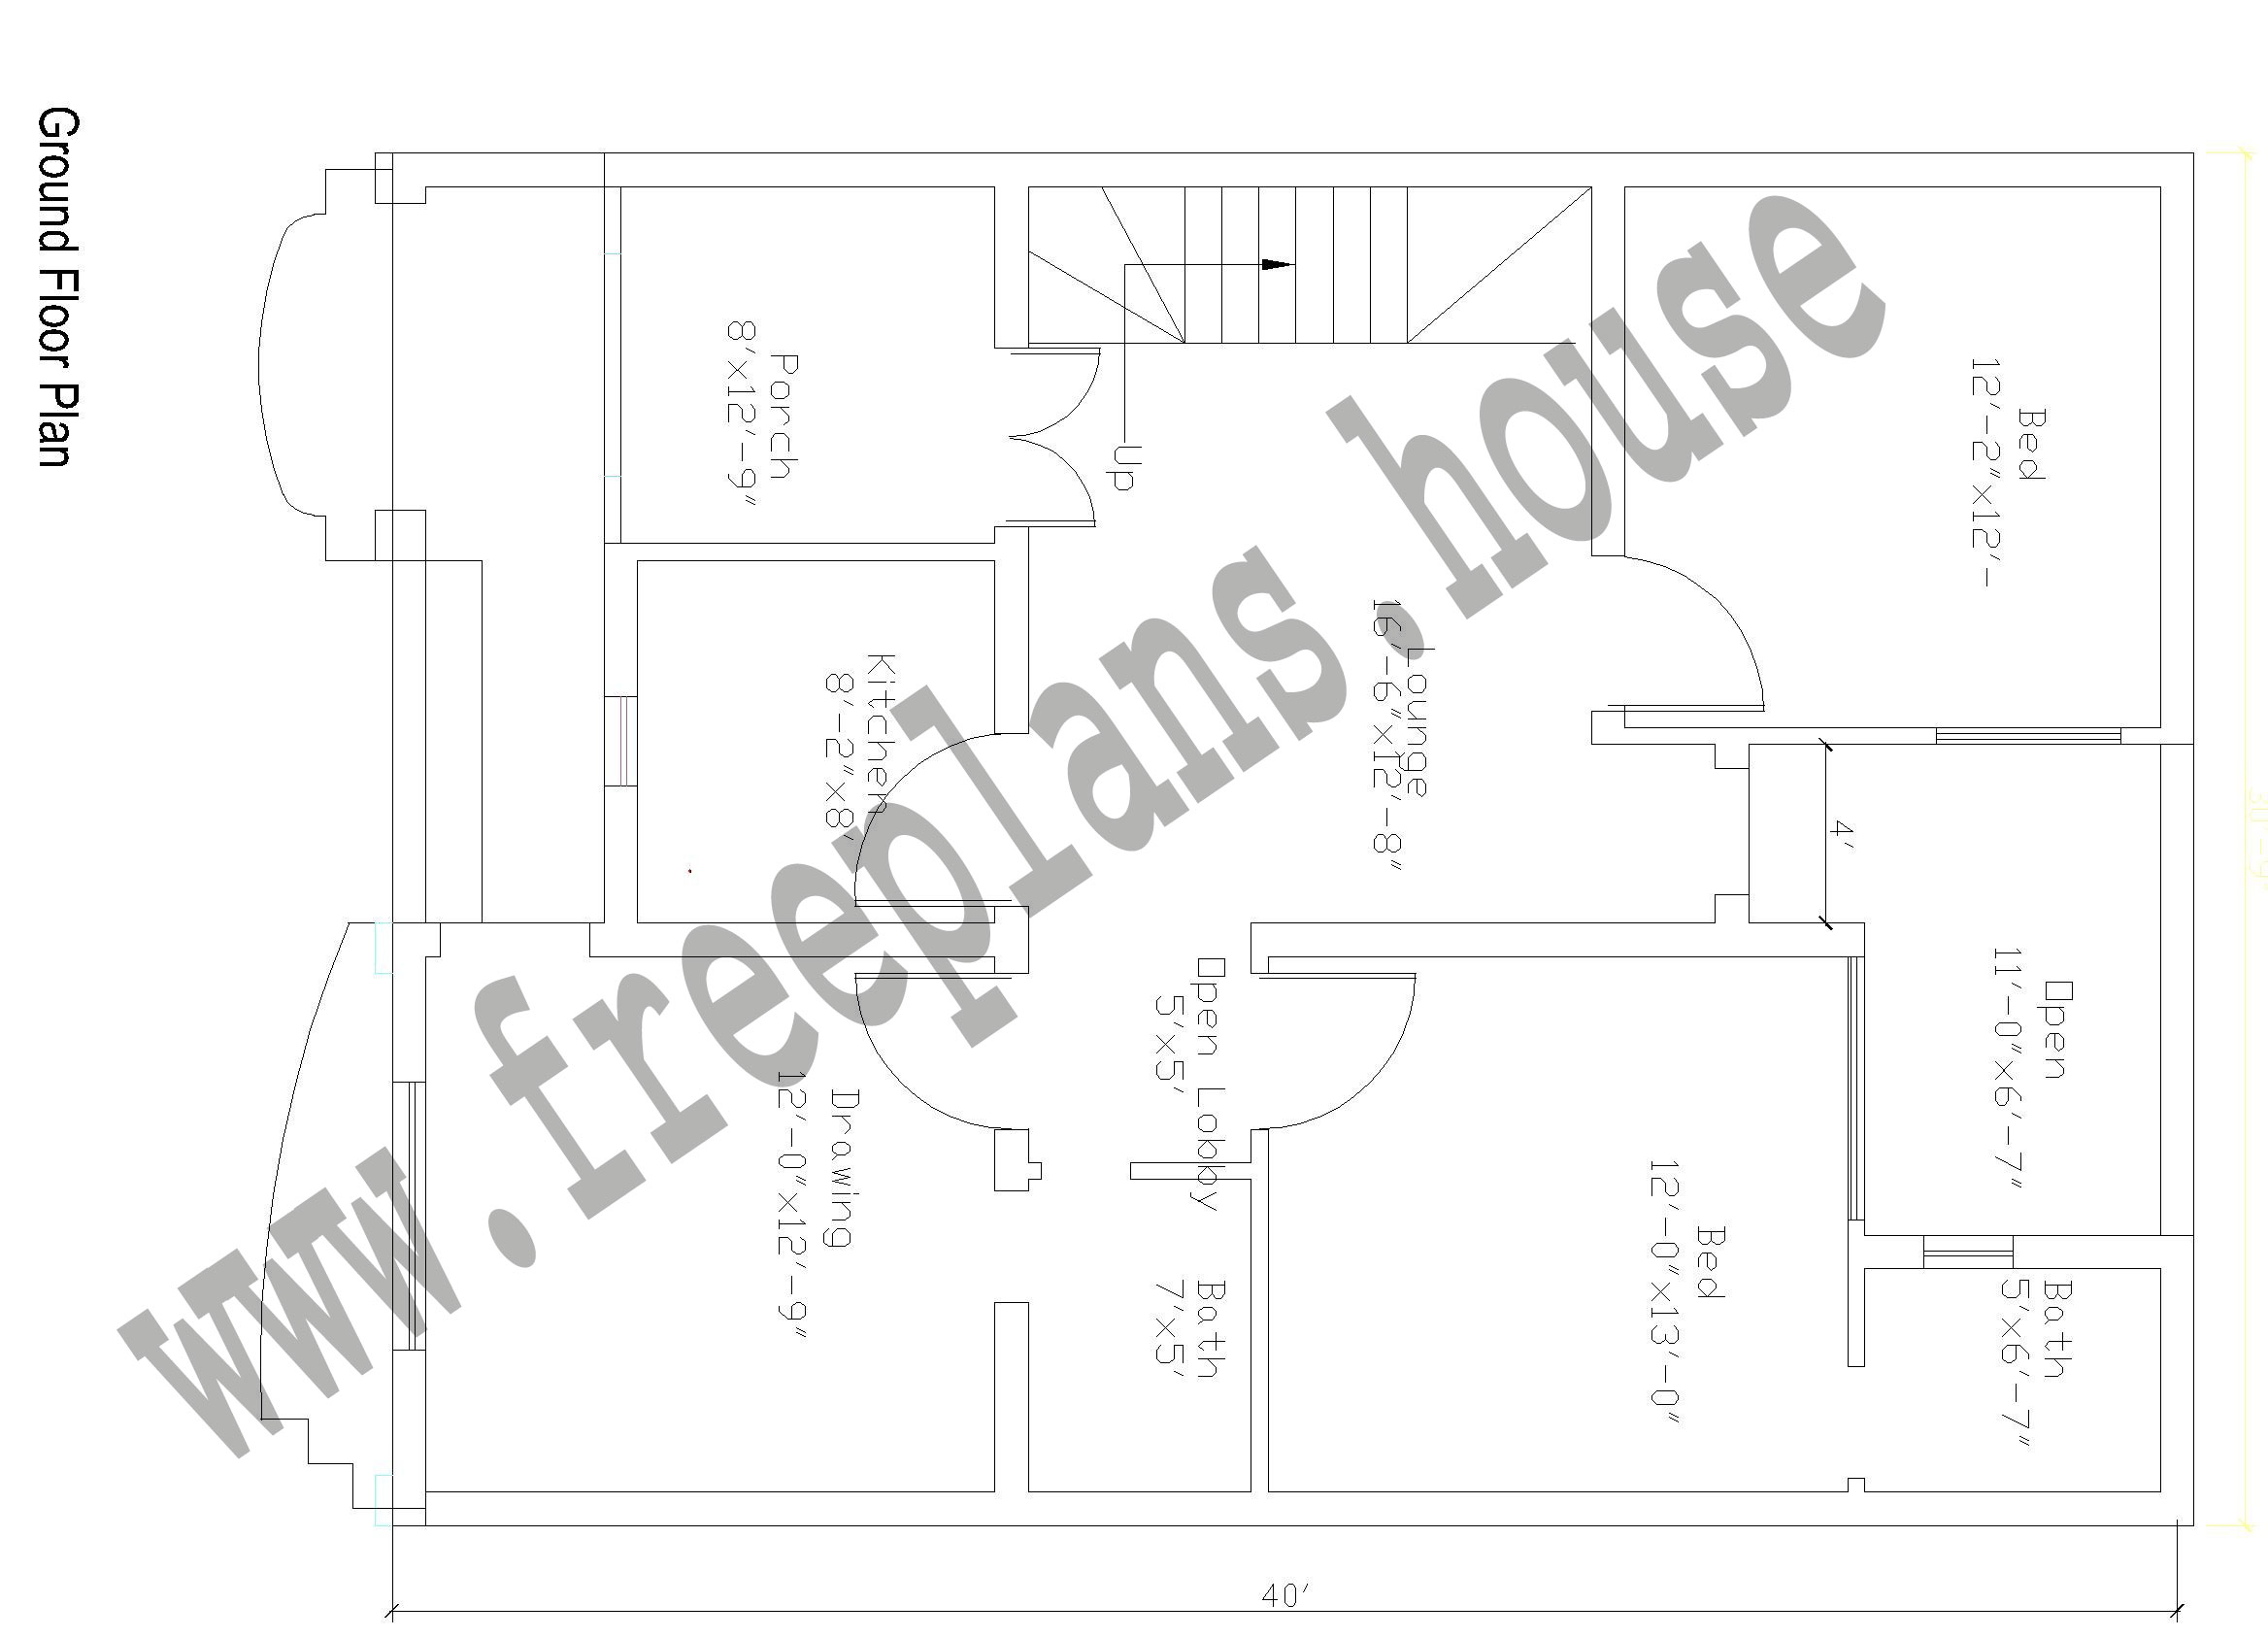 House Plan page KINGSTREE 2224 C furthermore Accra House Plan Ground Floor together with Odikro House Plan Groundfloor besides 30x40 Feet 108 Square Meters House Plan likewise House Plan page ASHLAND 2051 C. on 1500 house plans